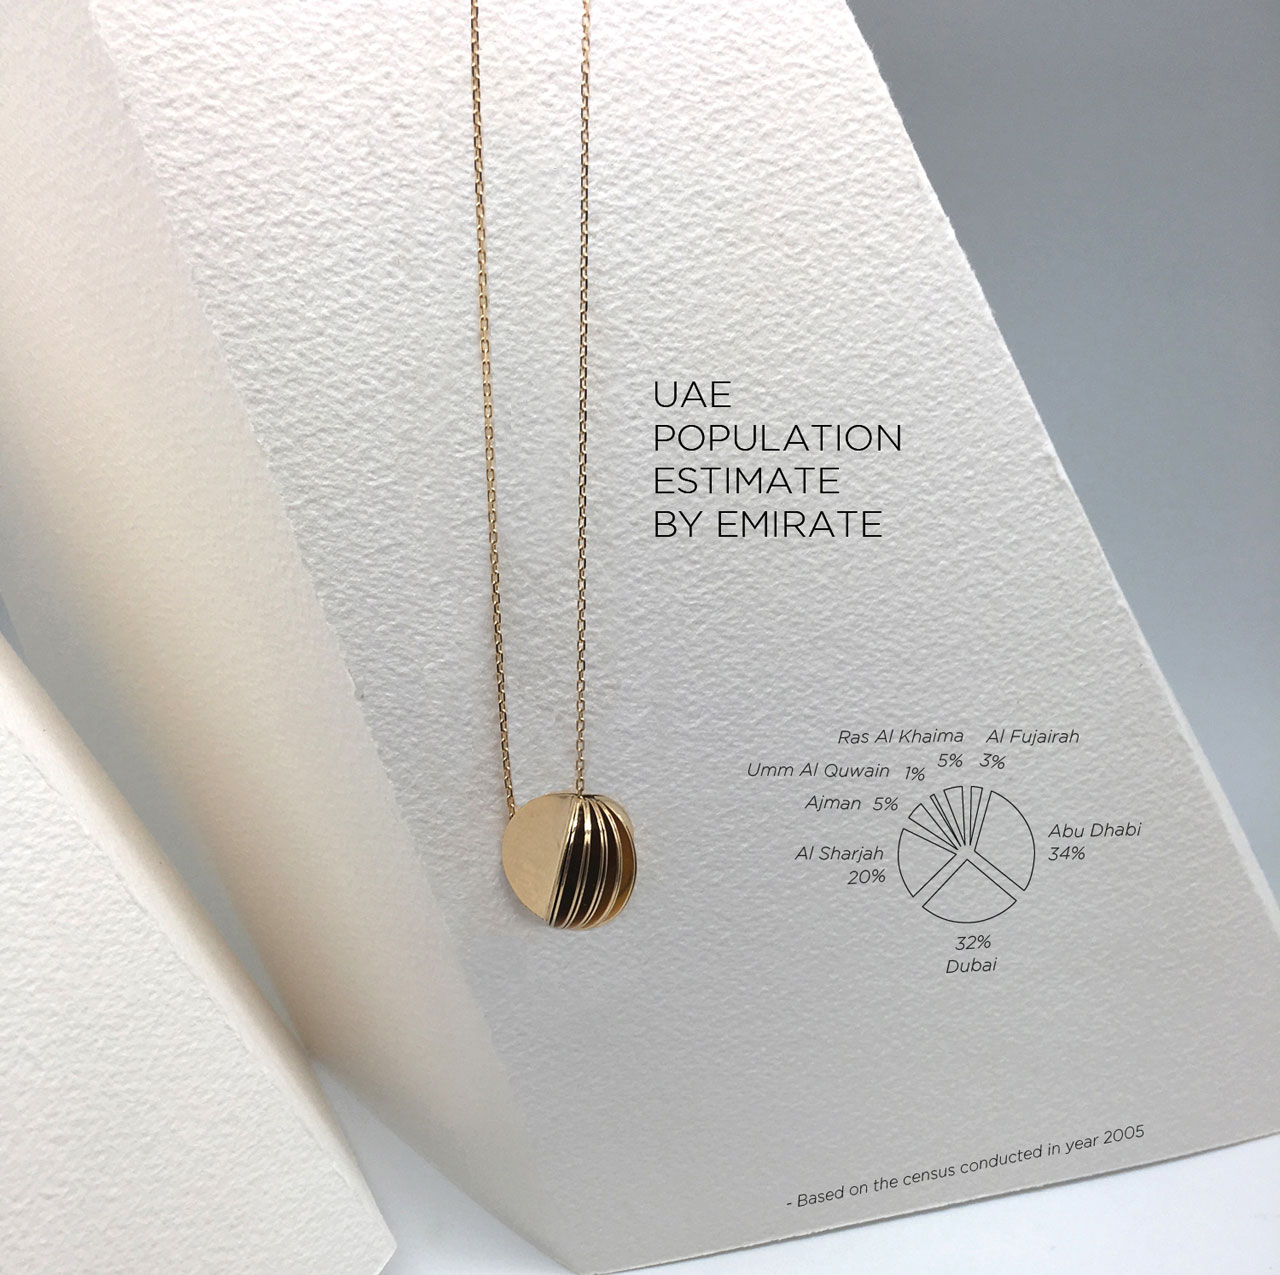 Monogram's Infographic Collection, launched during #DXBDW2016 at Bloomingdales, Dubai Mall. Statistical jewellery; multidimensional visual forms that tell the story of the UAE's development through its people.